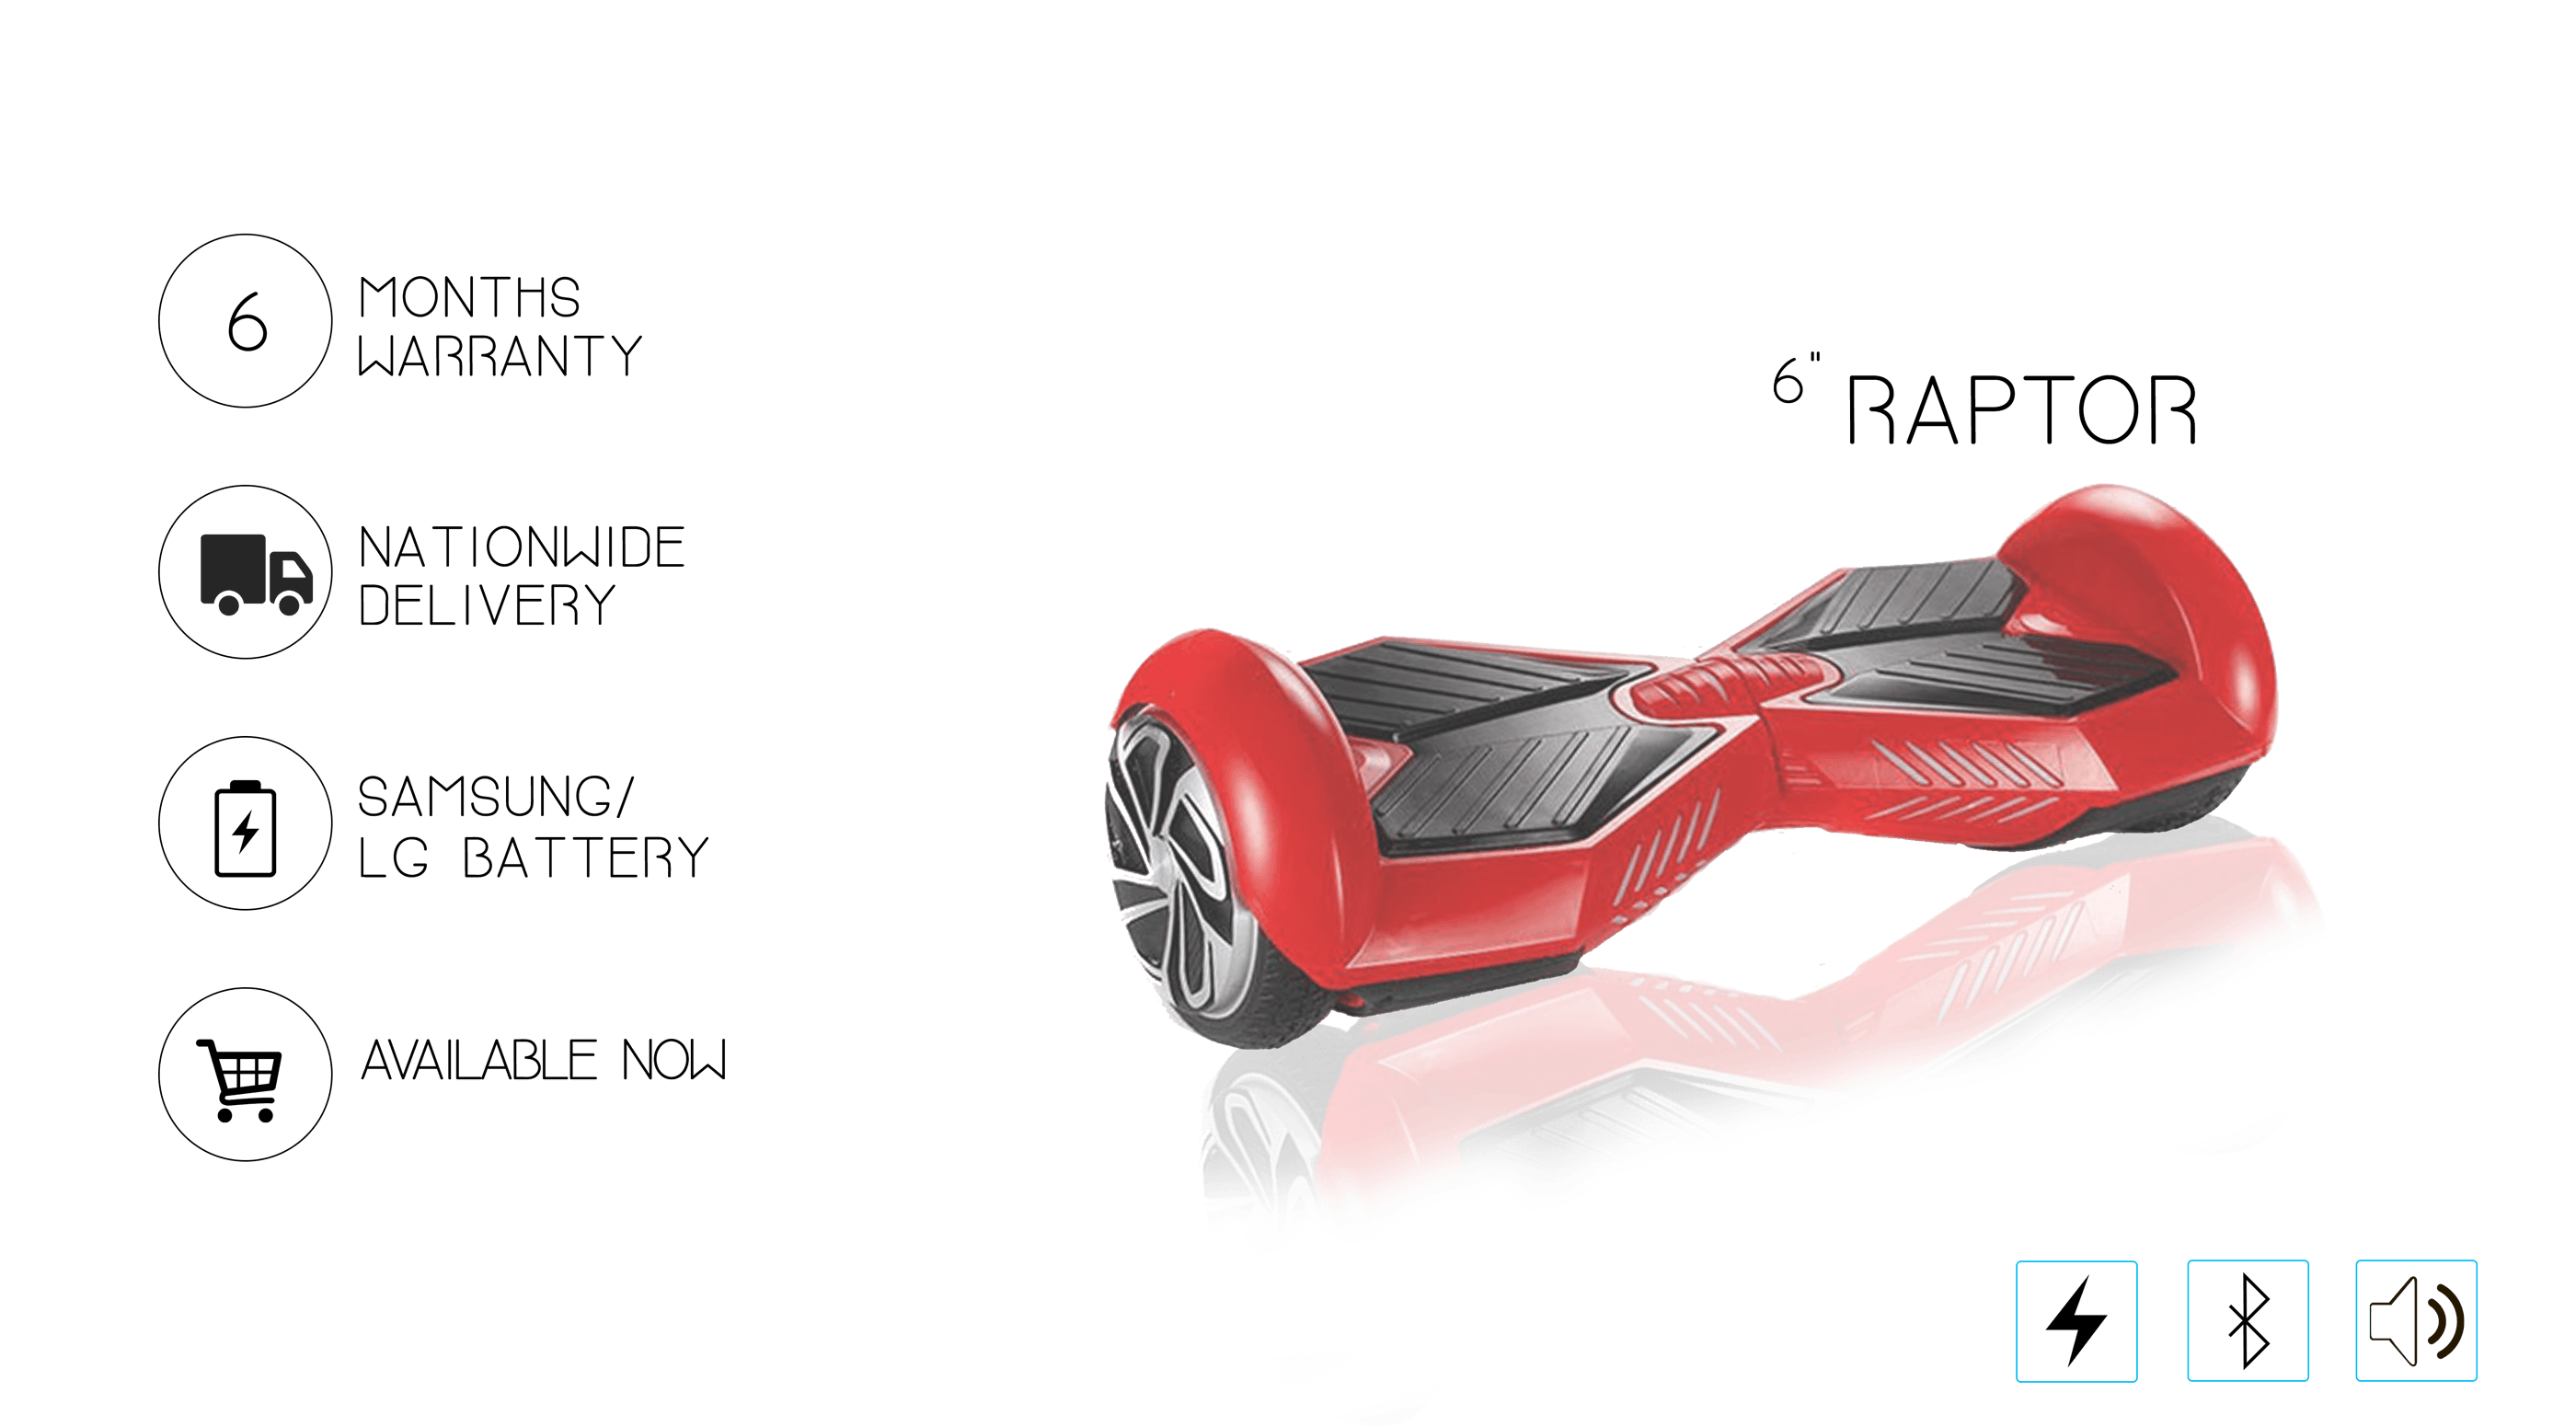 HVB_gboard_raptor_new